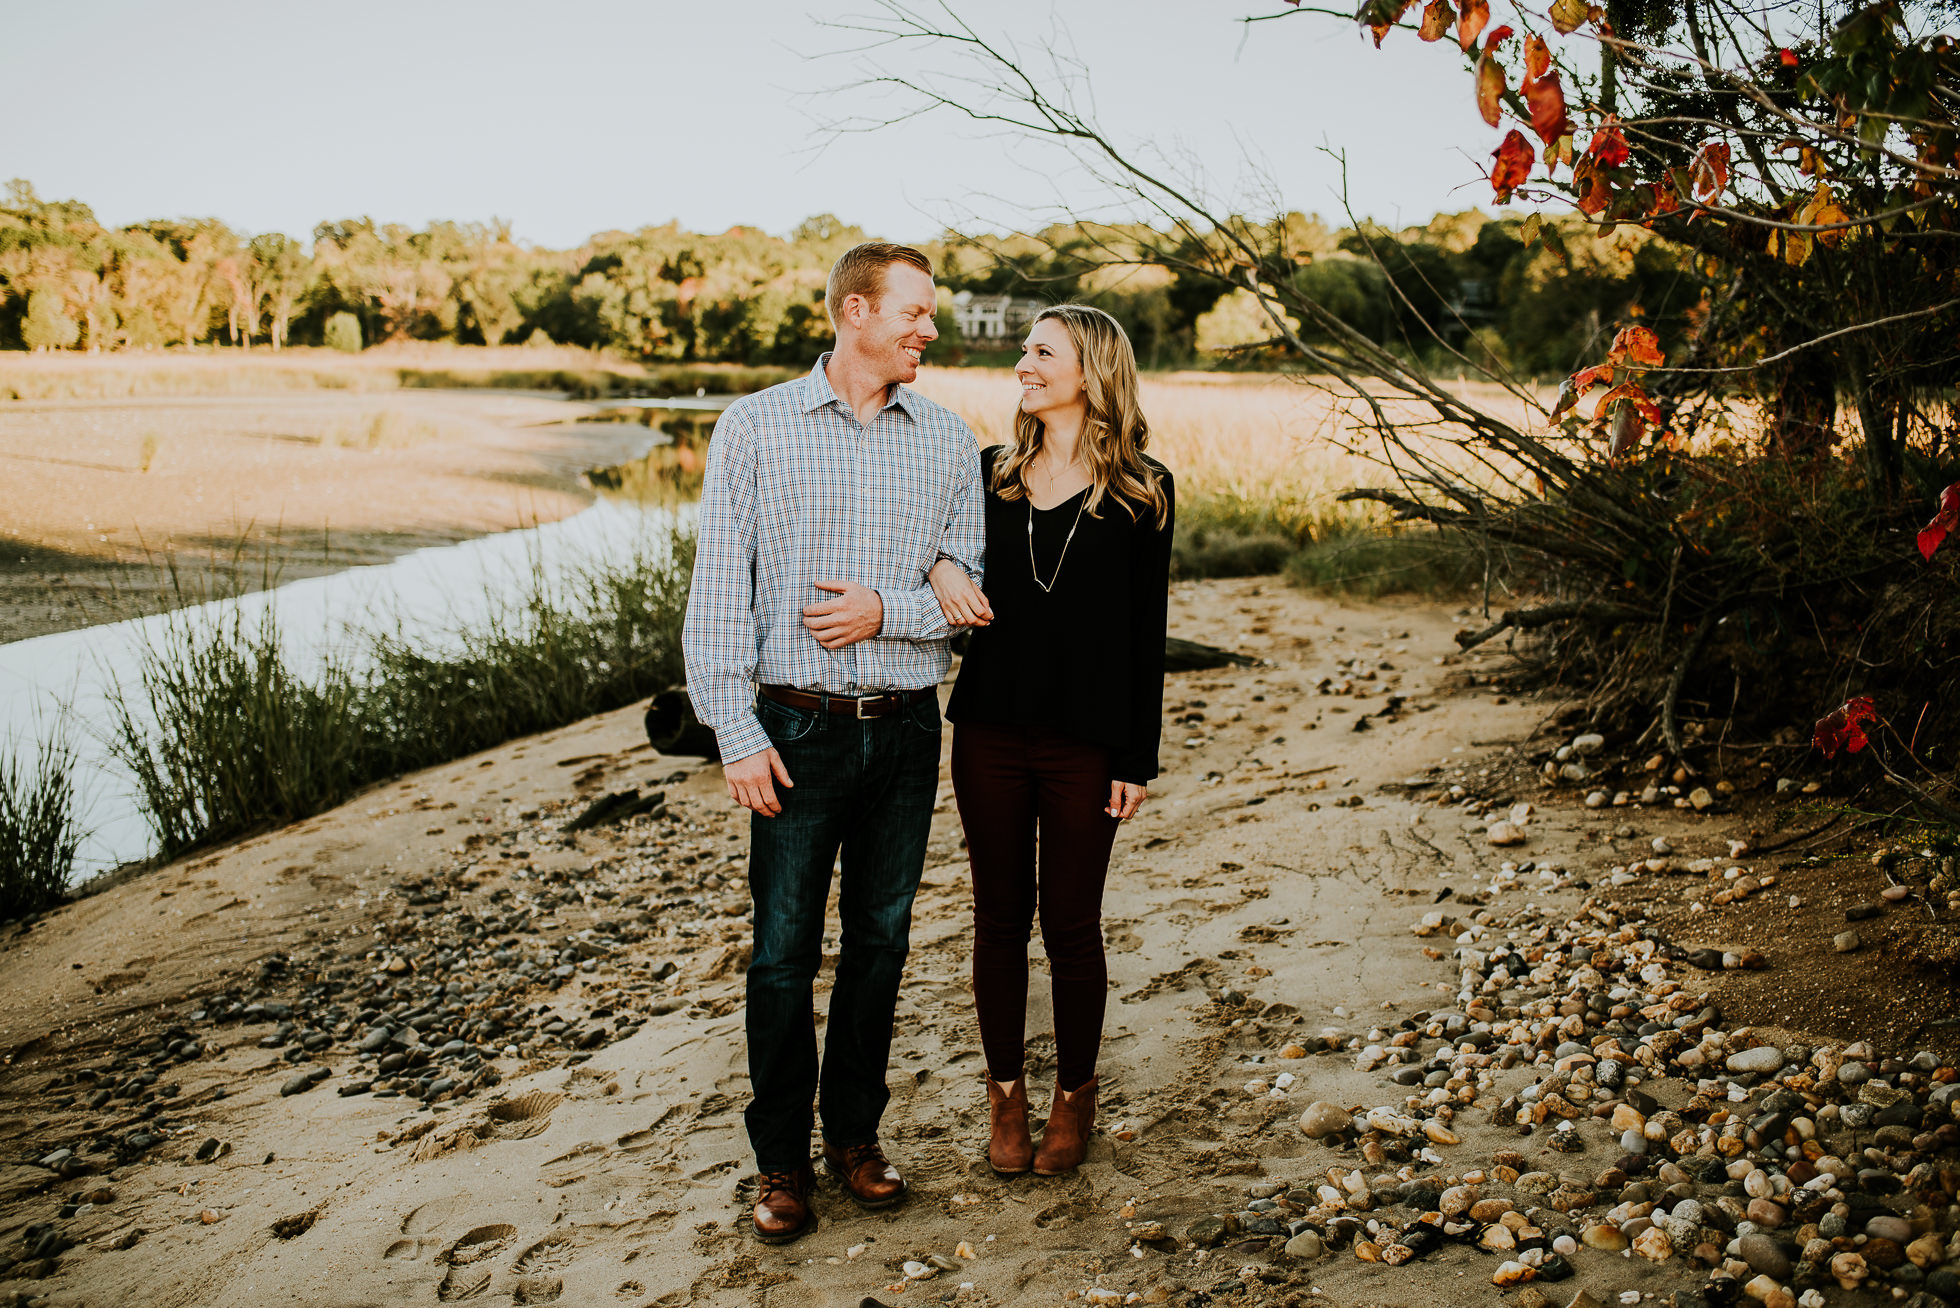 candid engagement session photographed by Traverse the Tides